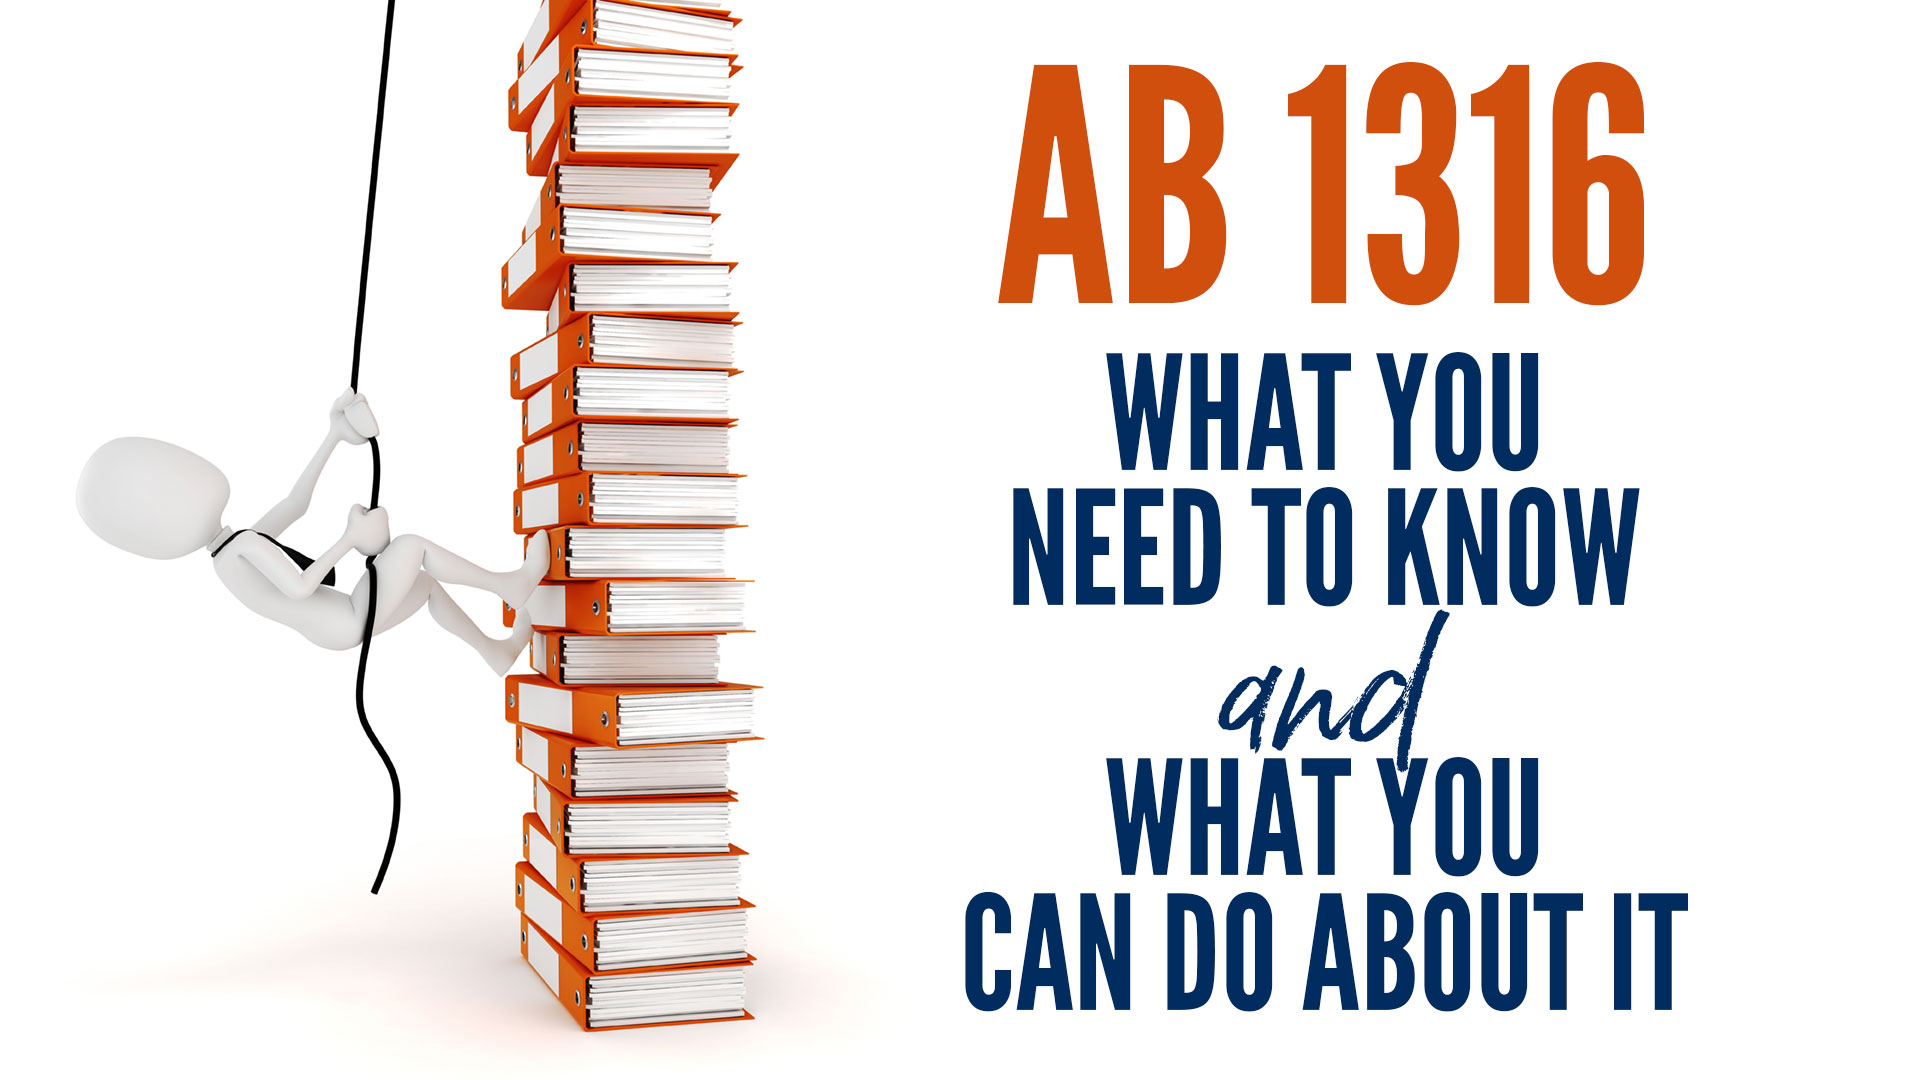 AB 1316 What You Need To Know and What You Can Do About It